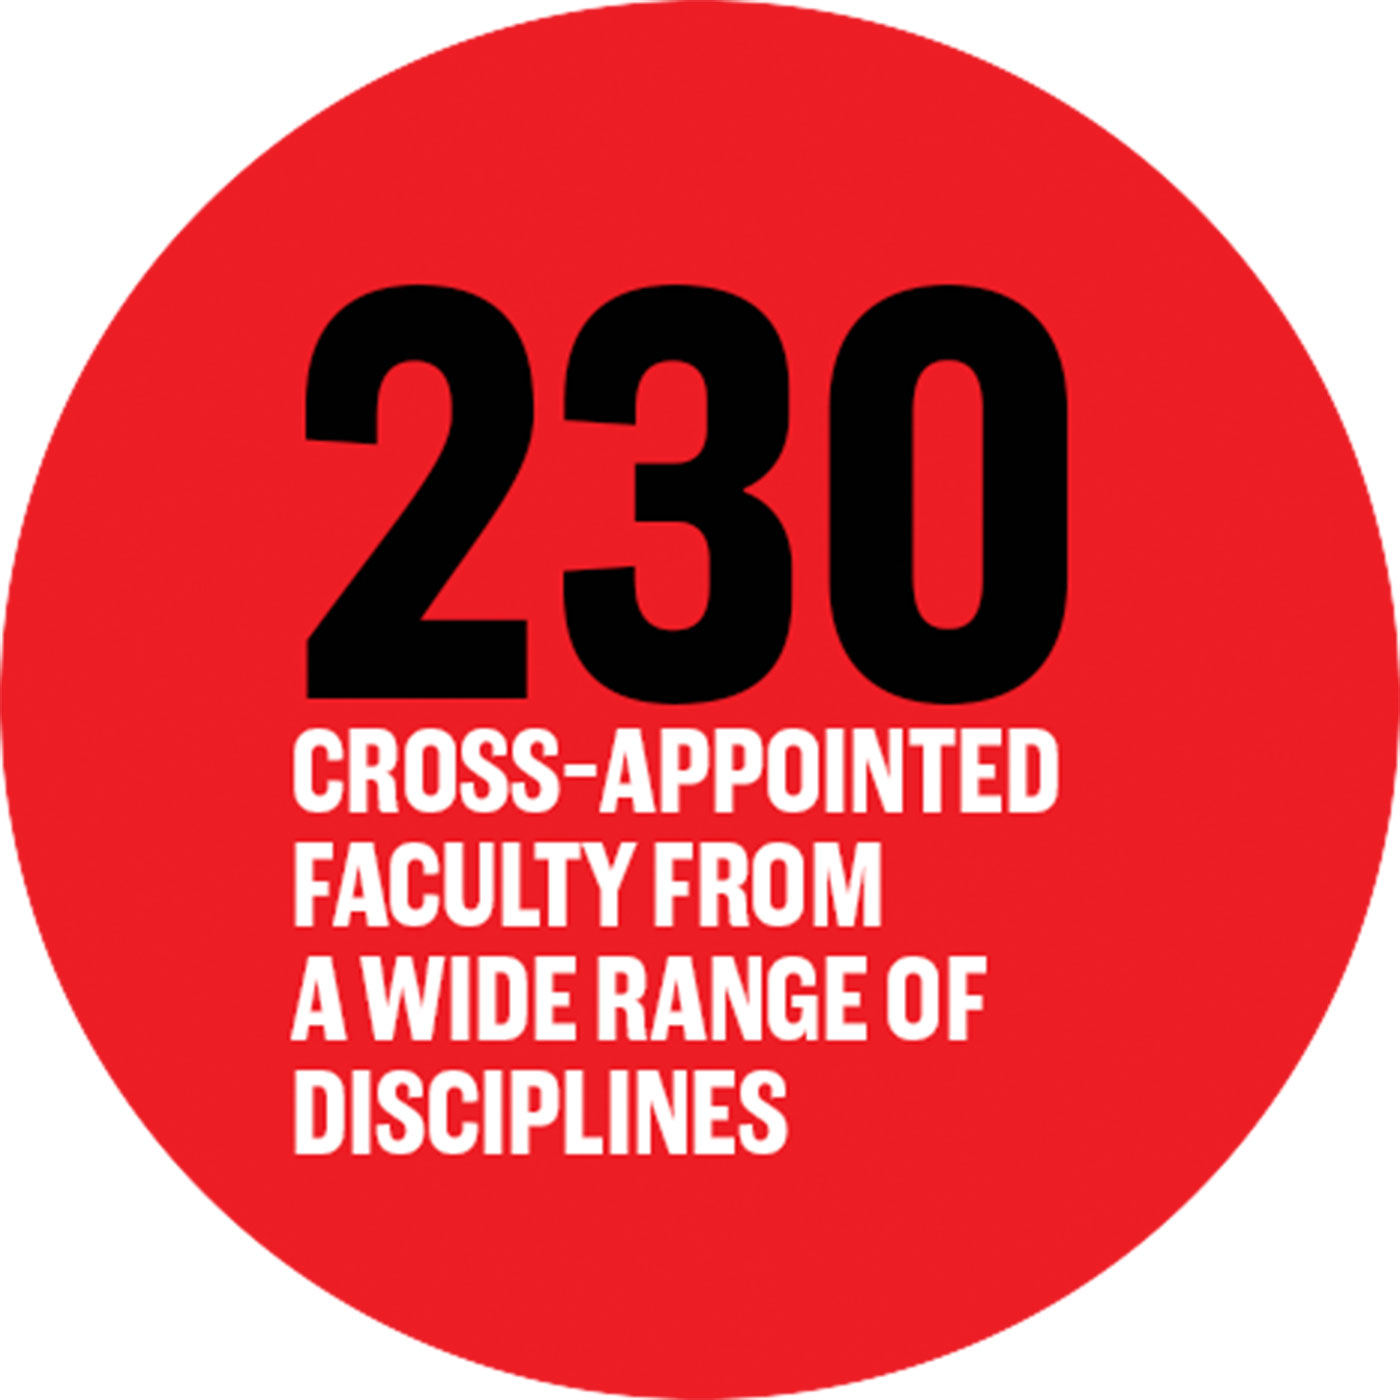 230 cross-appointed faculty from a wide range of disciplines